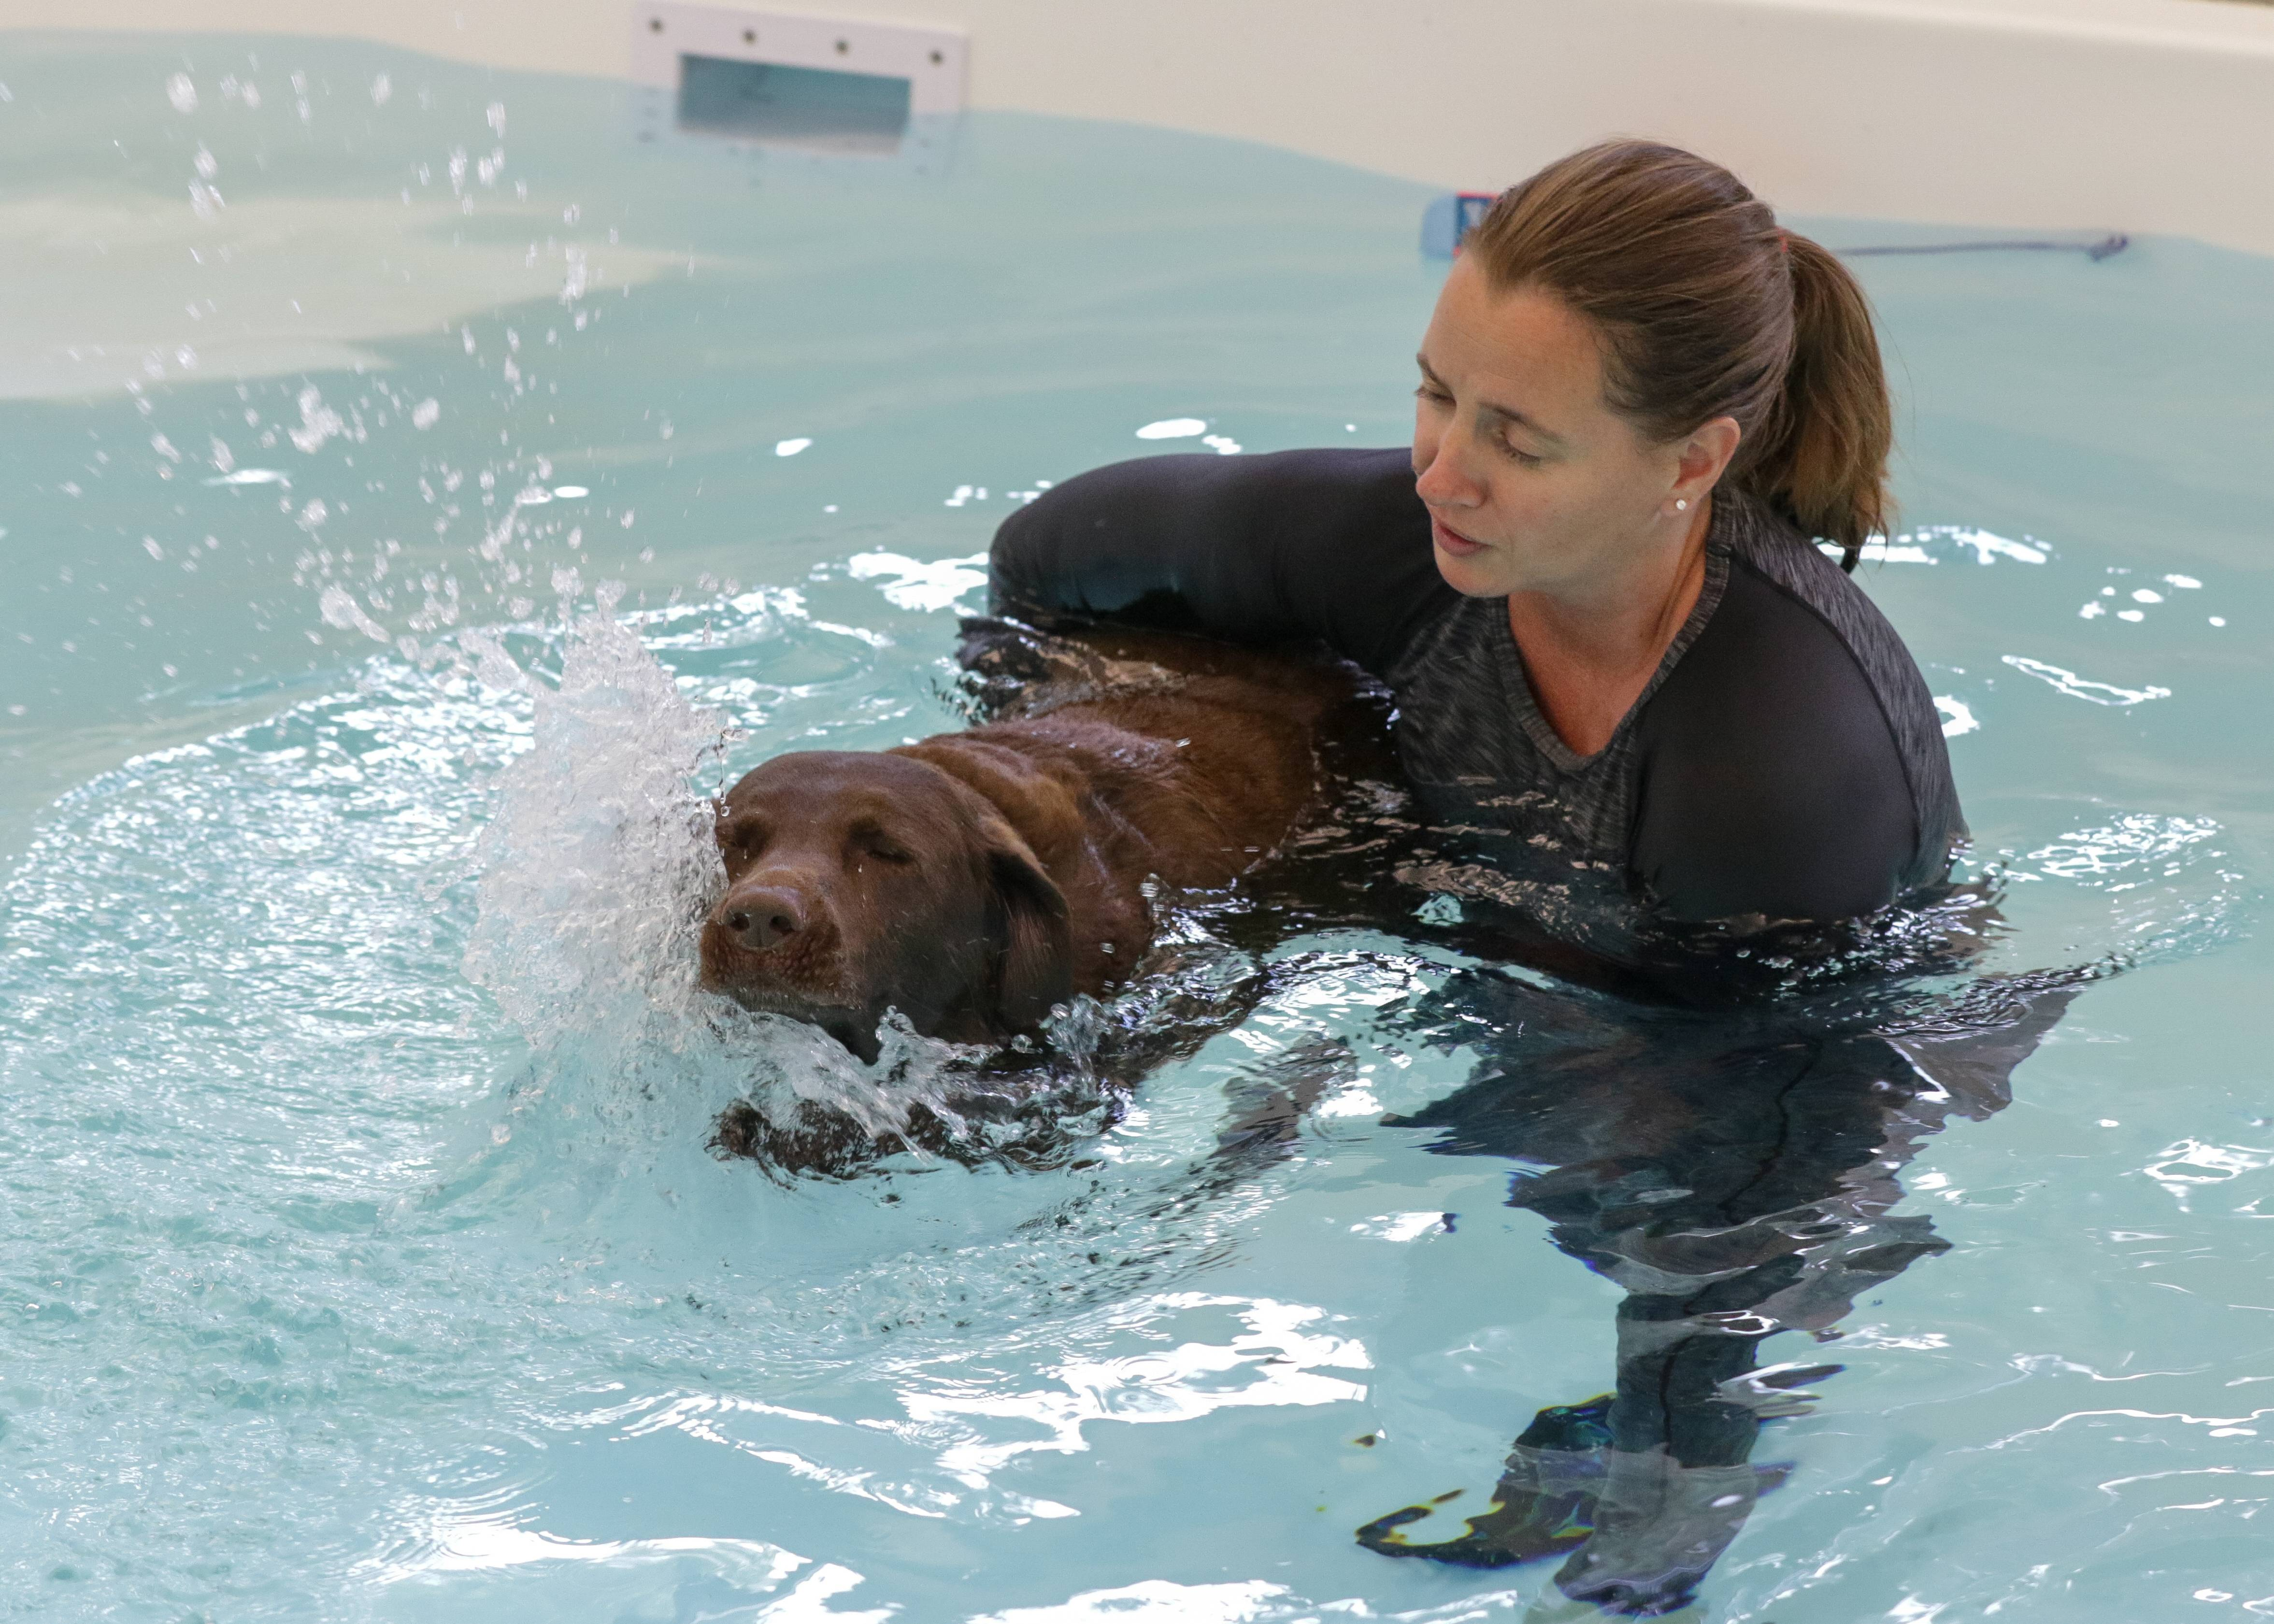 Co-owner Shannon Bergman takes Lucy for a swim at Wag 'N Paddle indoor dog pool and park in Naperville, opening soon.The business is expected to open soon at 1847 W. Jefferson Ave.